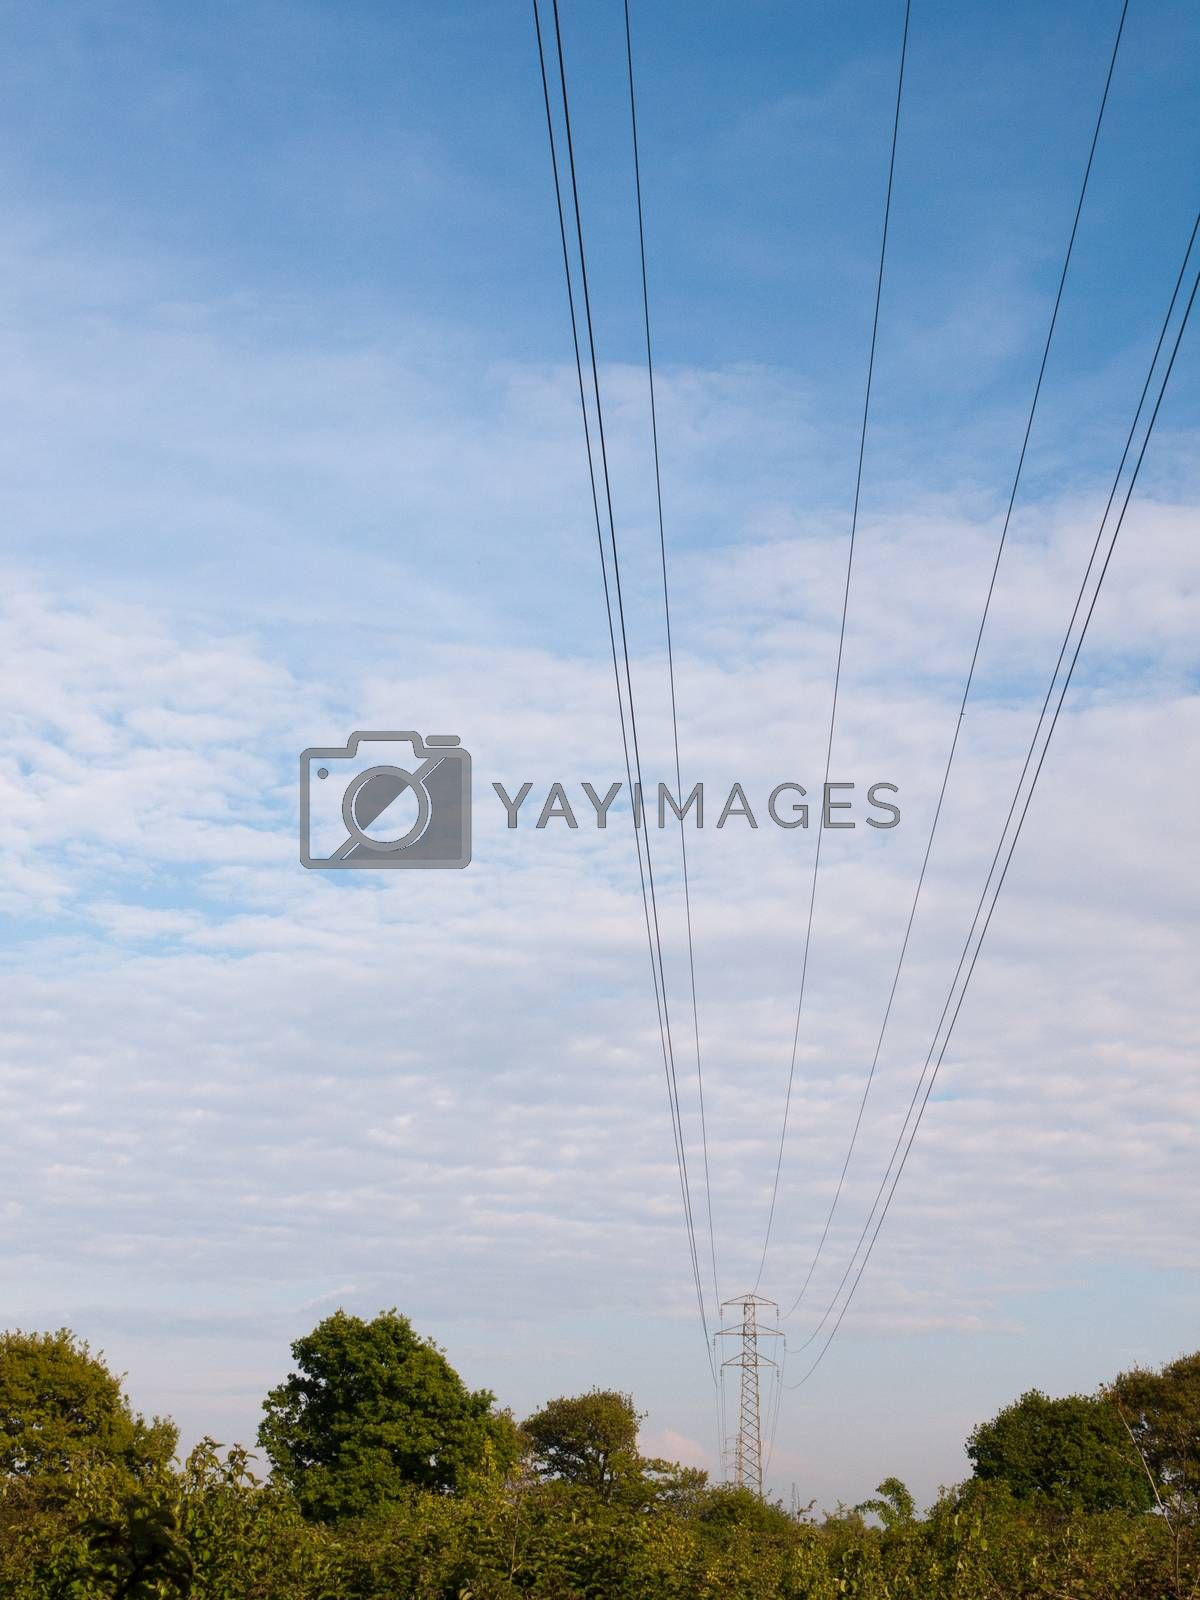 electric wires on a pylon in the distance spreading across the clear blue and cloudy sky beautiful communication peace